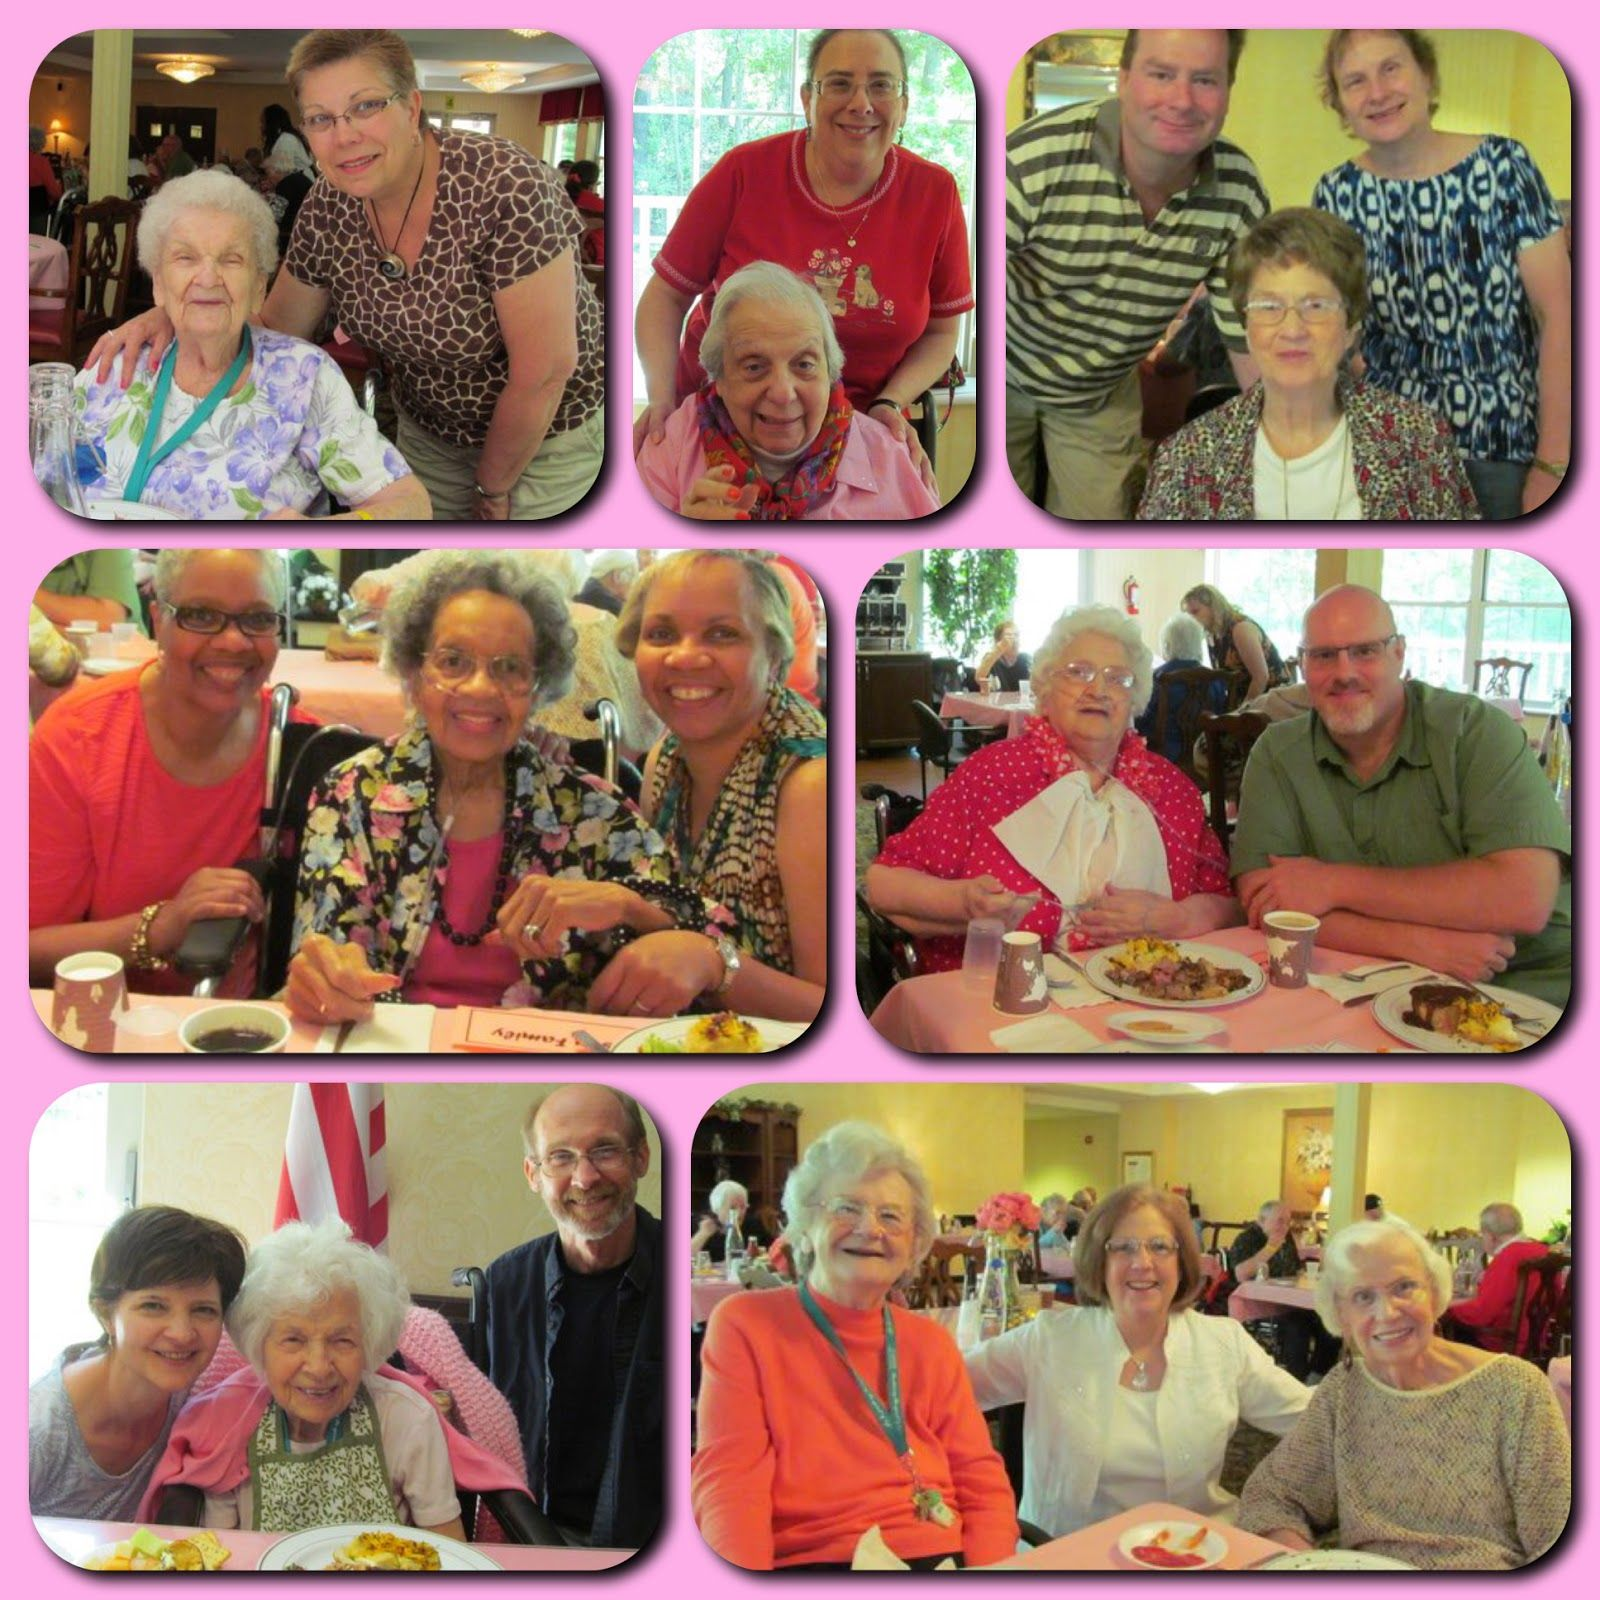 Juniper Village At Forest Hills: Mother's Day at Juniper Village at Forest Hills